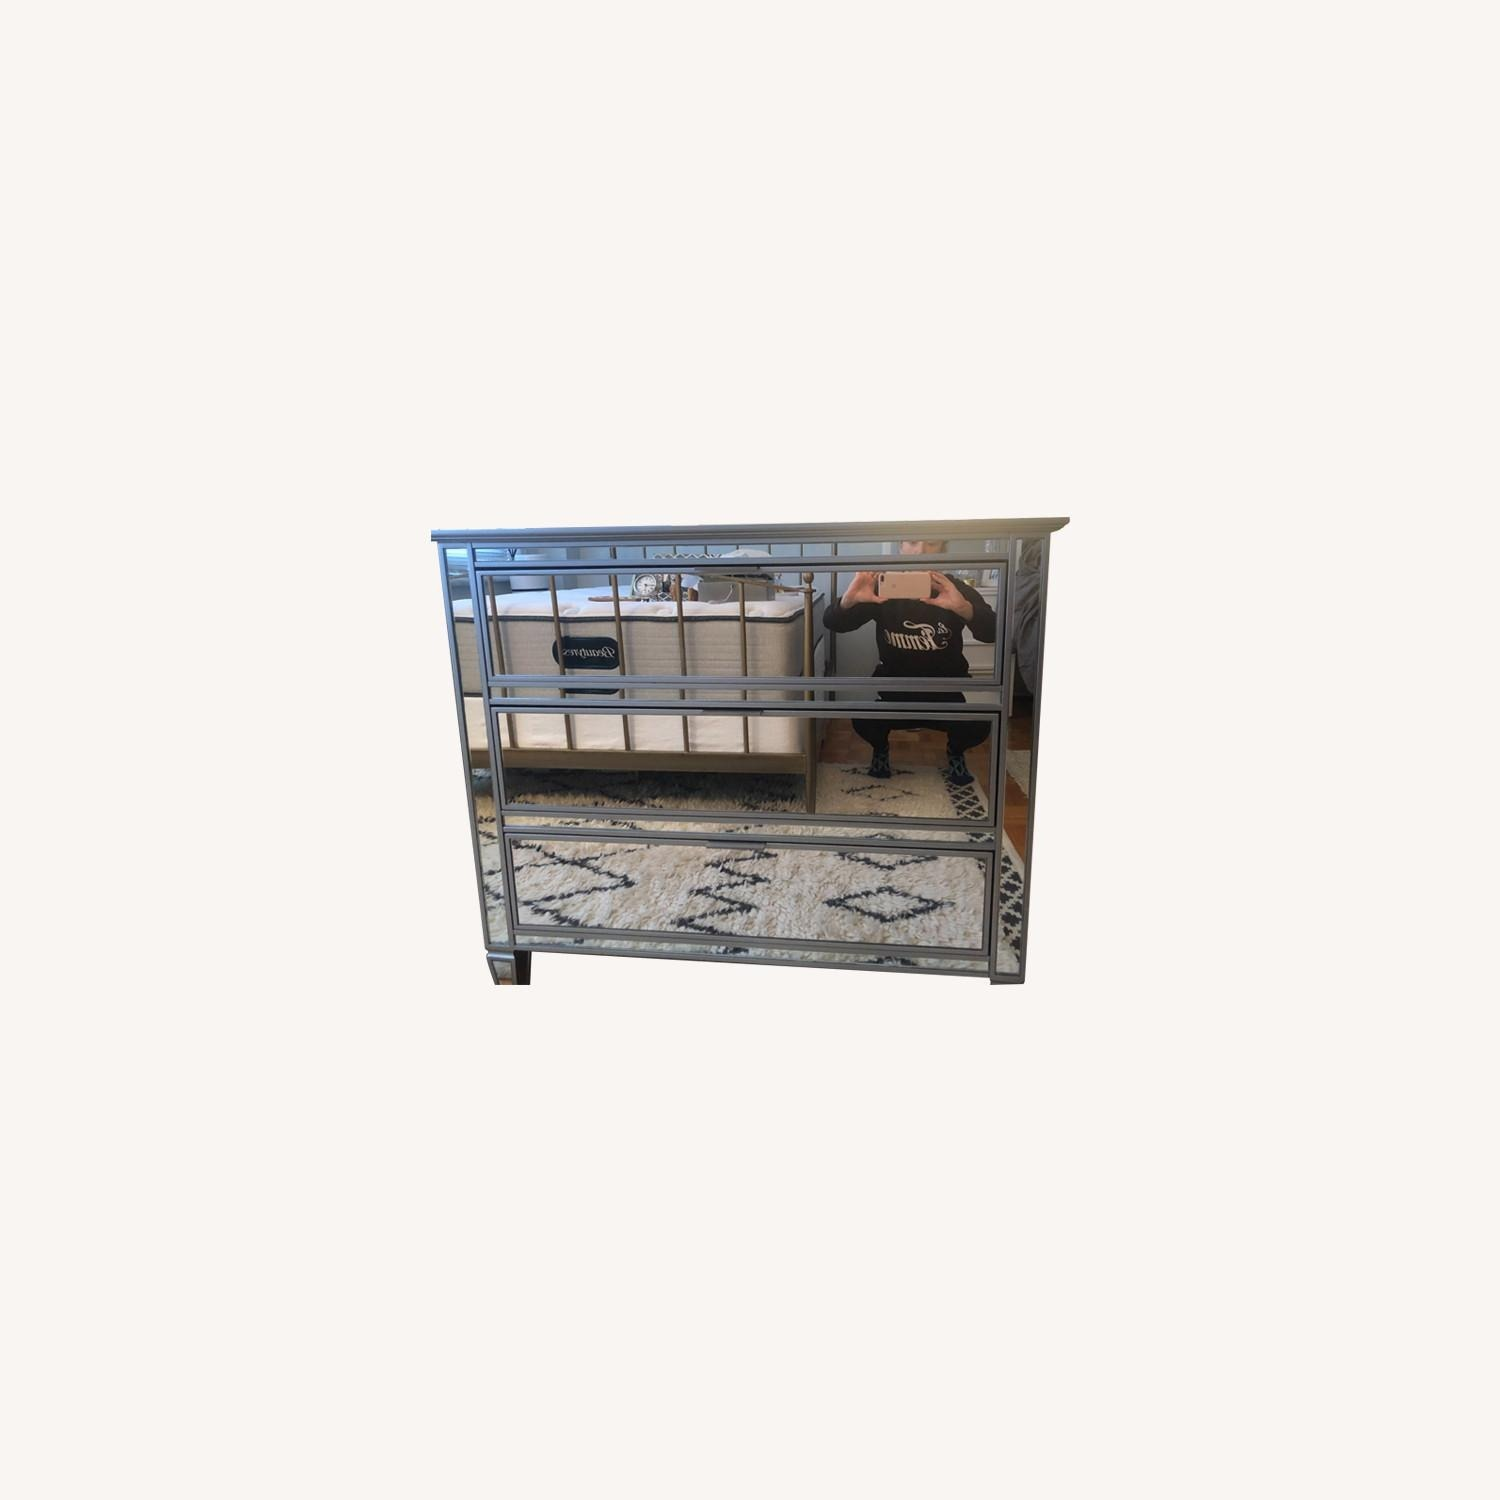 Pottery Barn Parker Mirrored Dressers - image-5